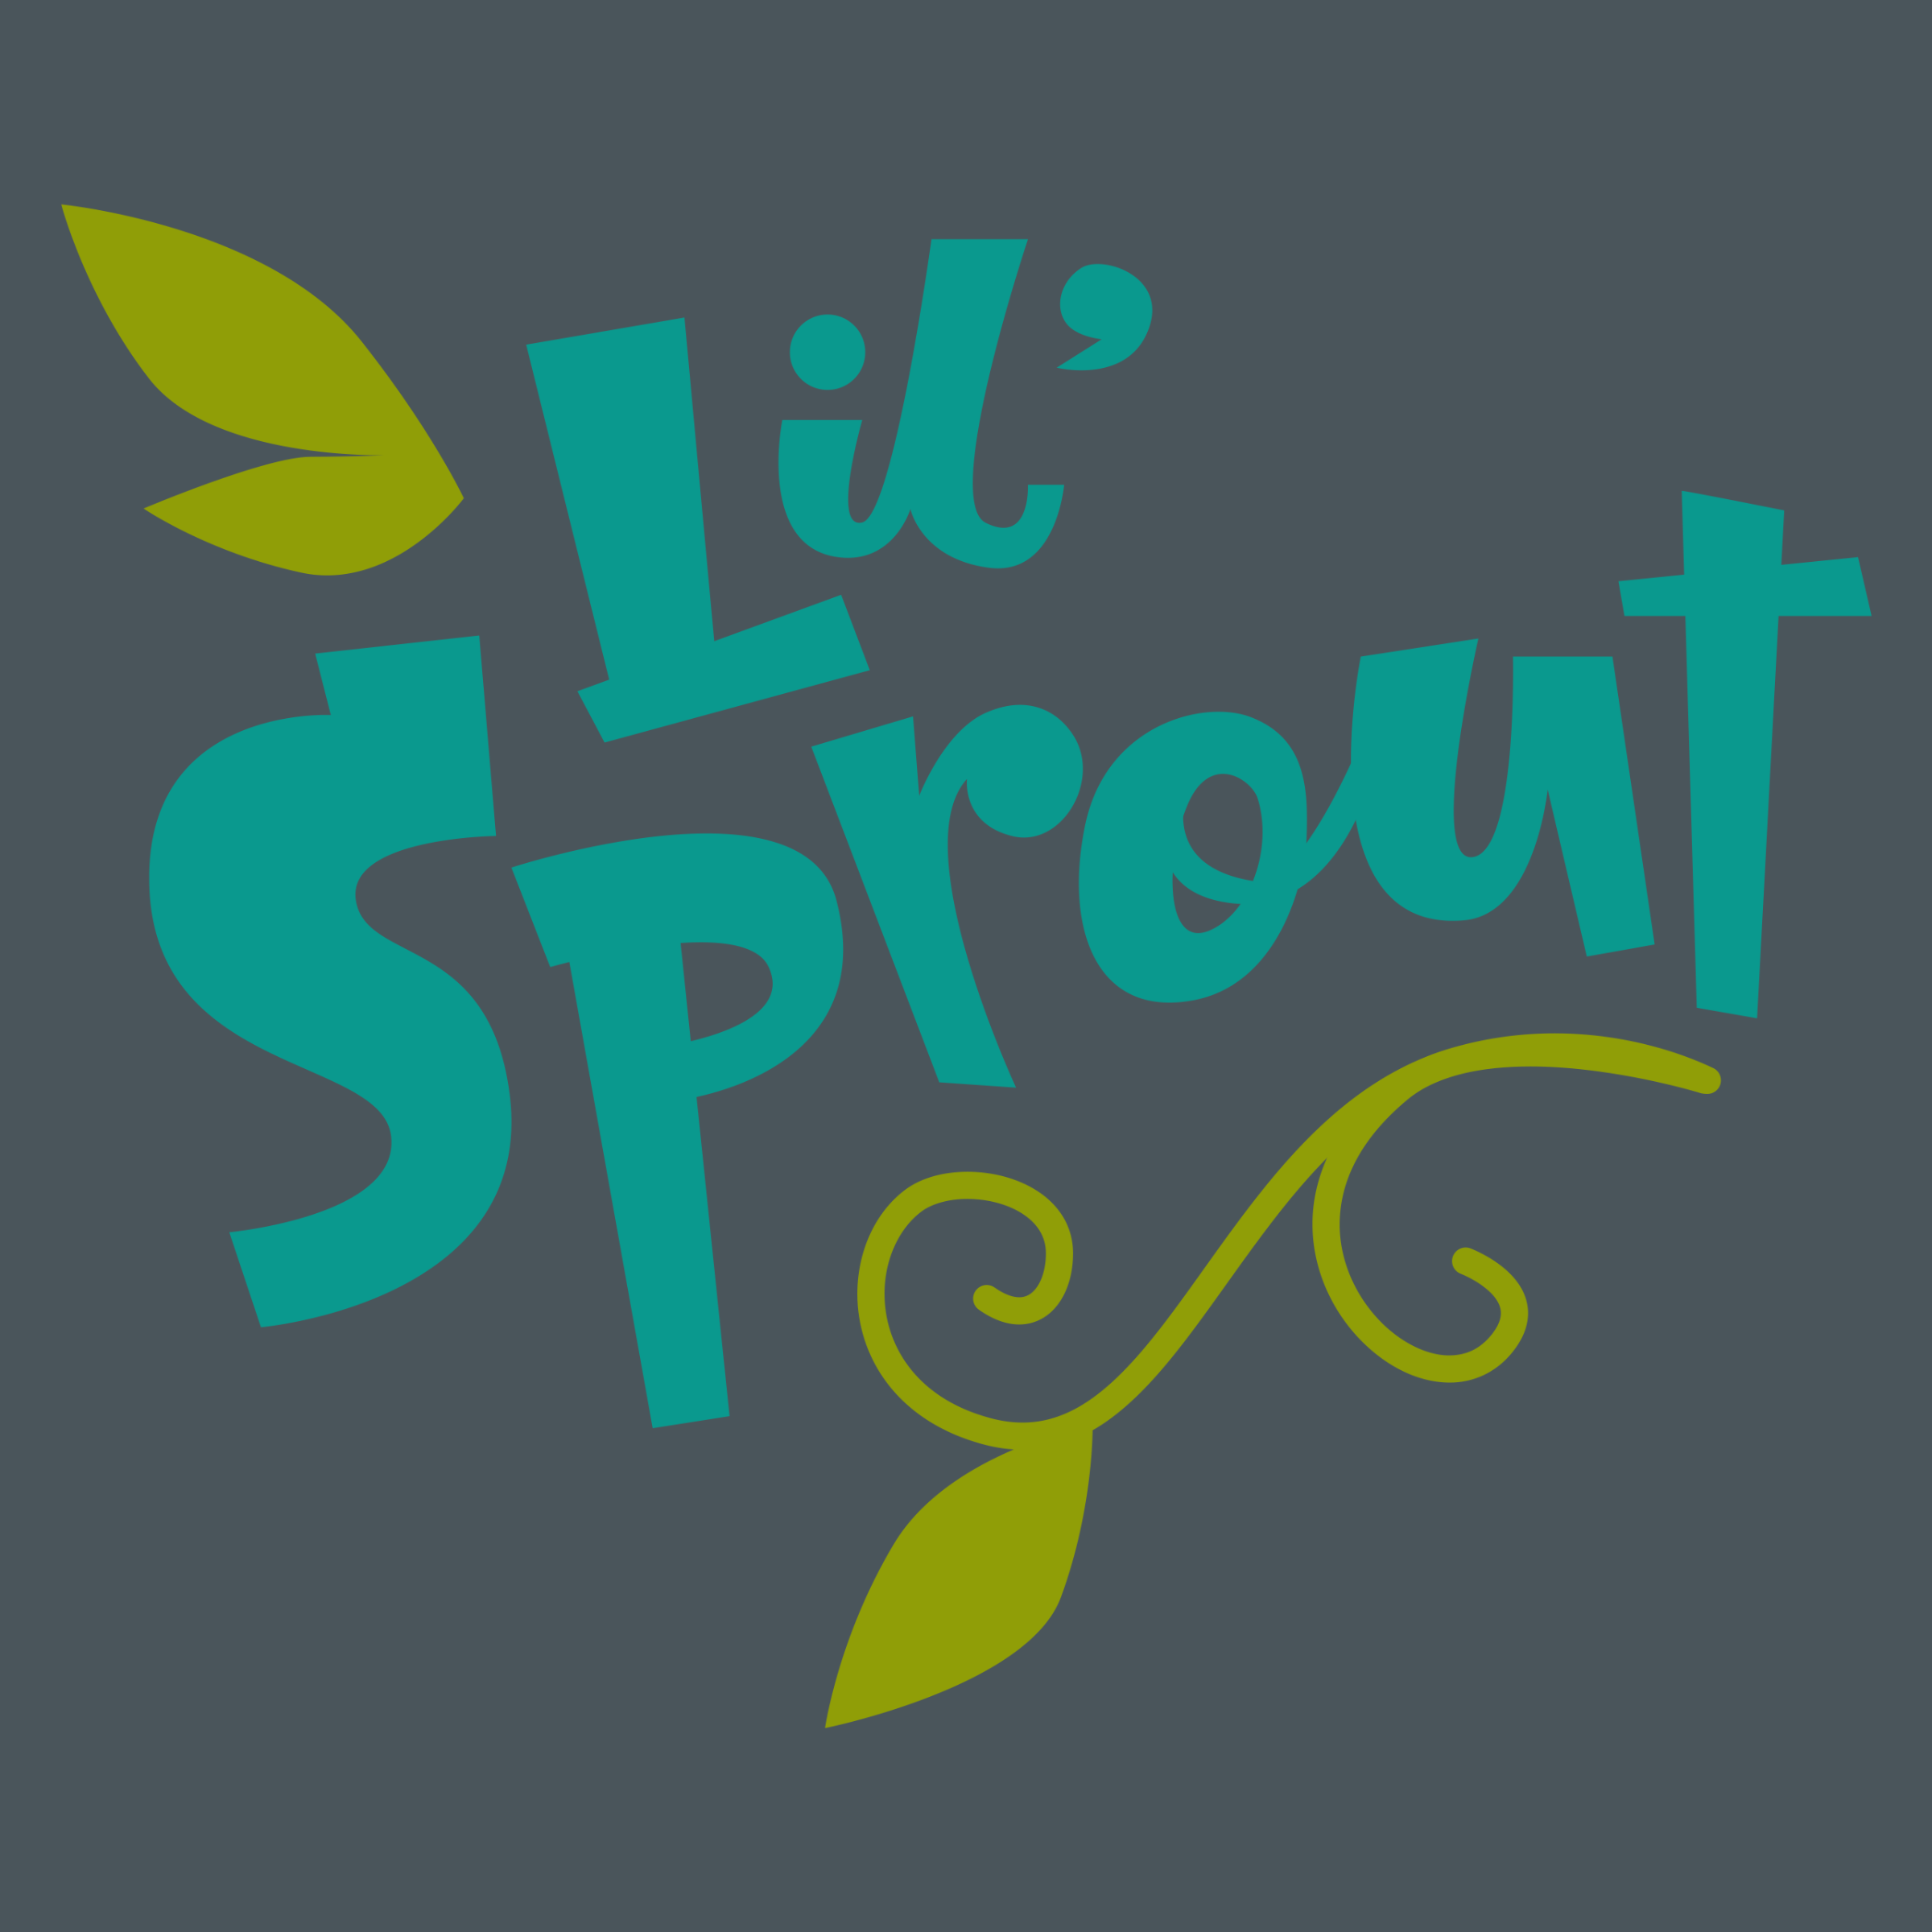 Lil' Sprout